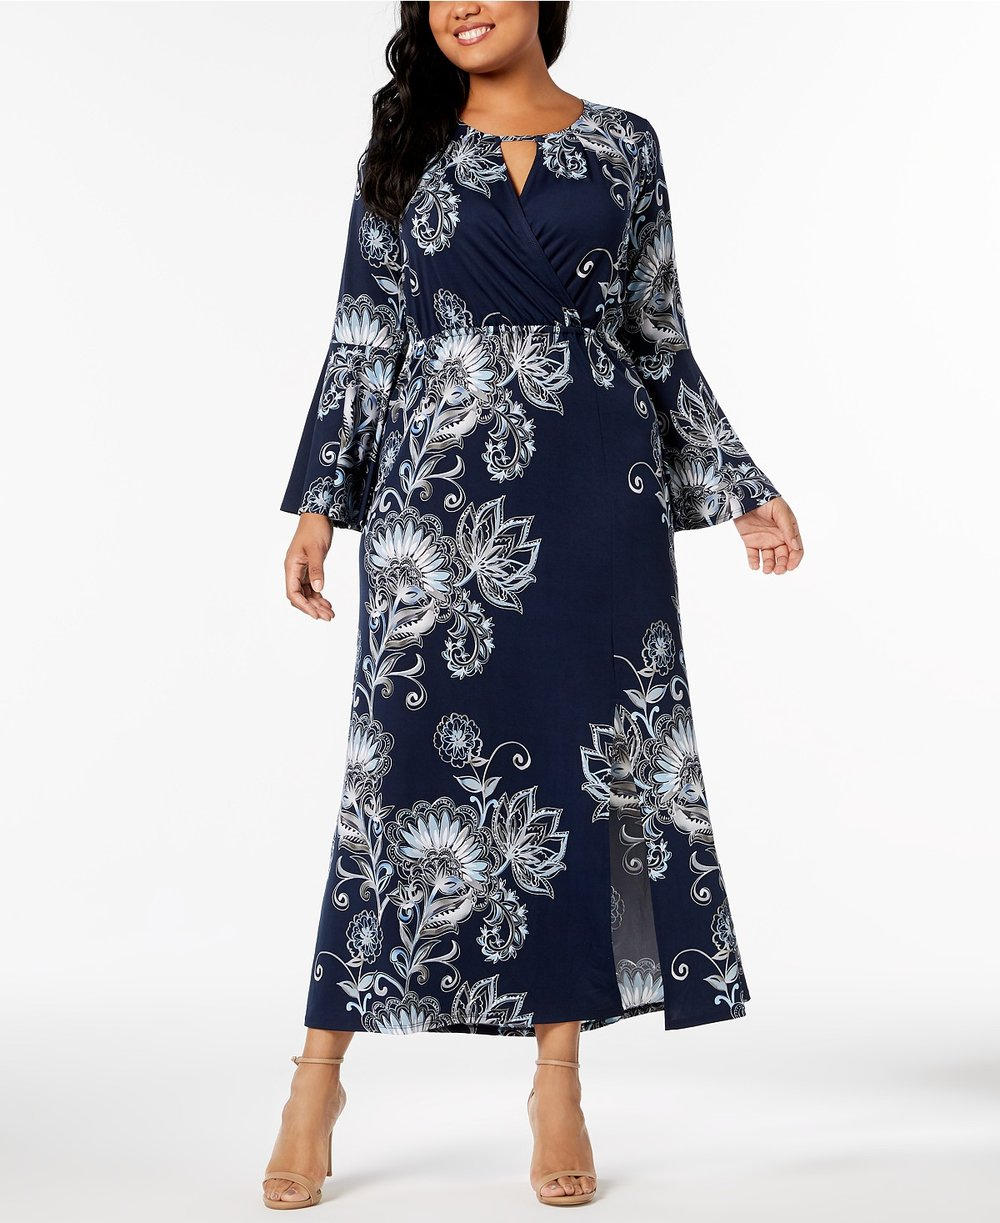 NY Collection  Plus & Petite Plus Size Printed Keyhole Maxi Dress. Macy's.Was: $70. Now: $36.